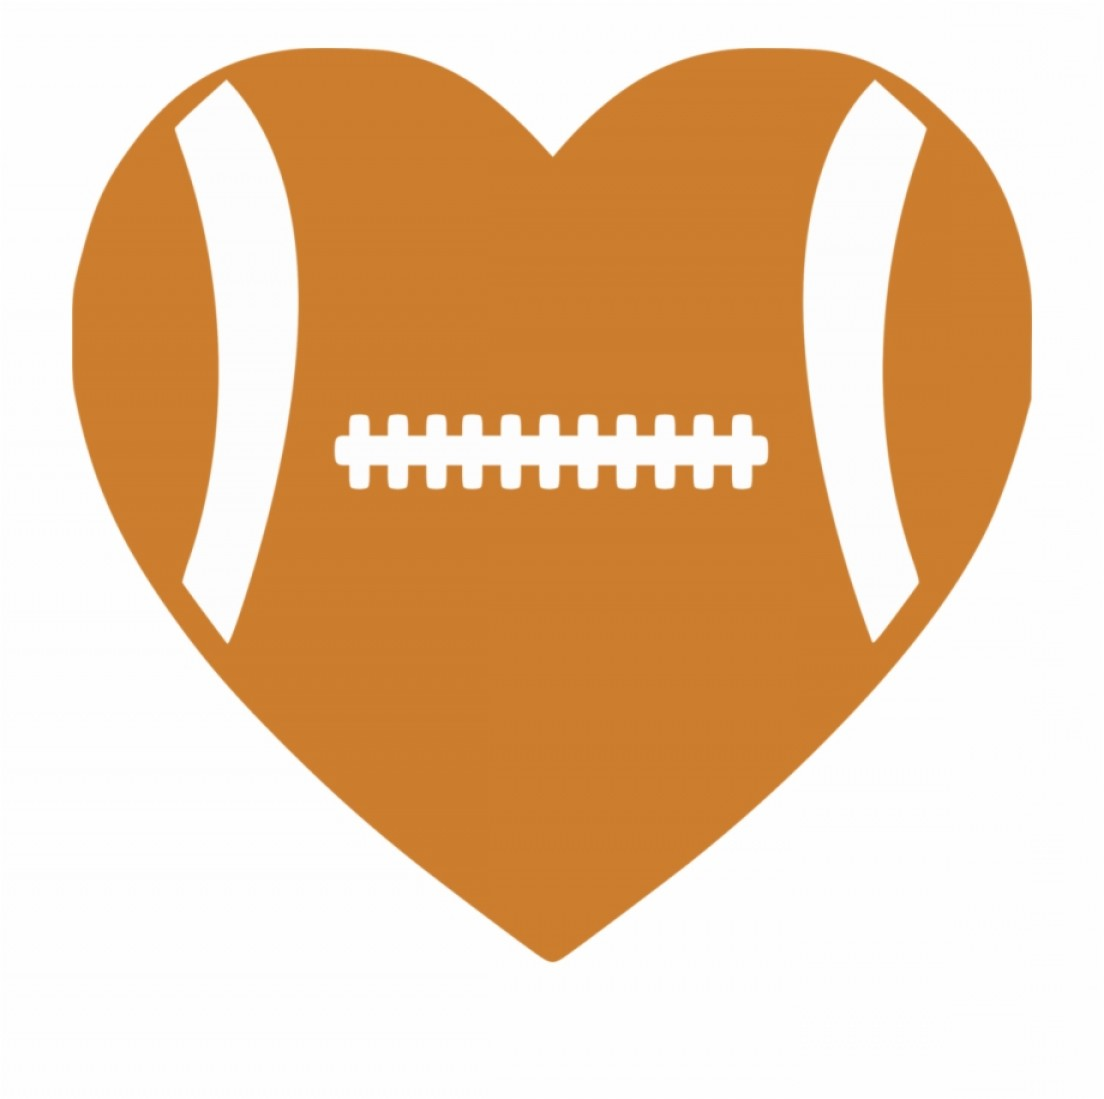 Football Heart Clipart Black And White.